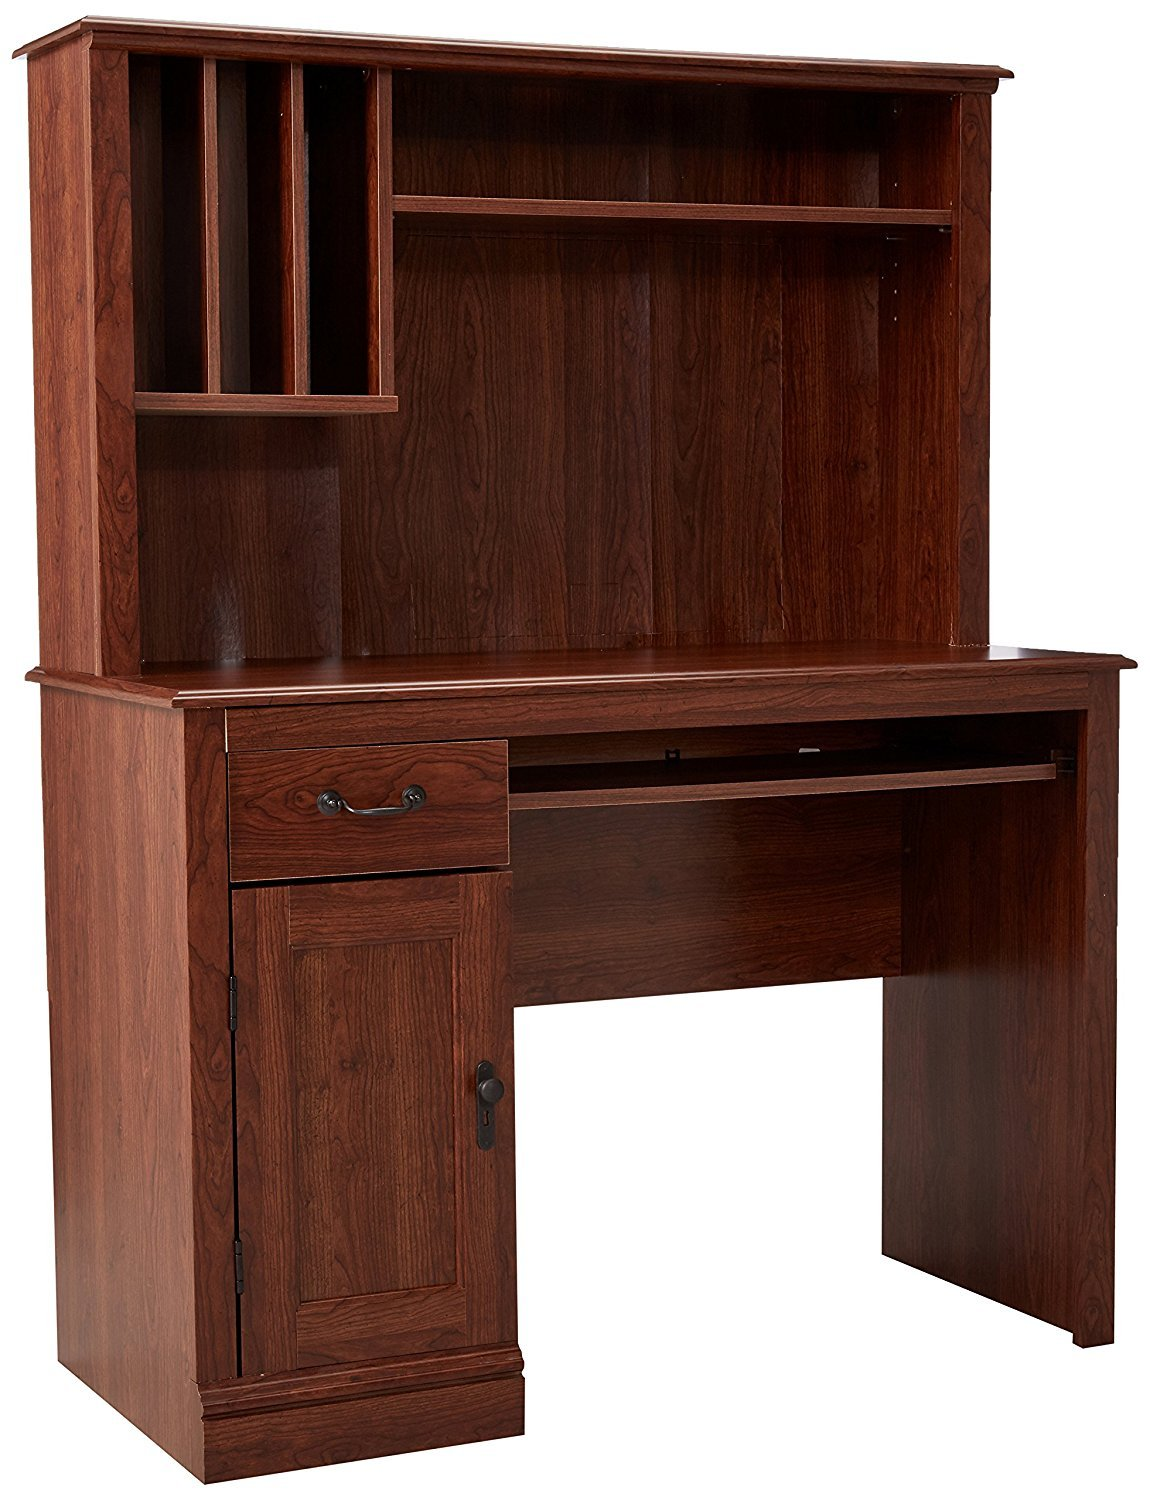 Computer Desk With Hutch And Drawers Home Furniture Design